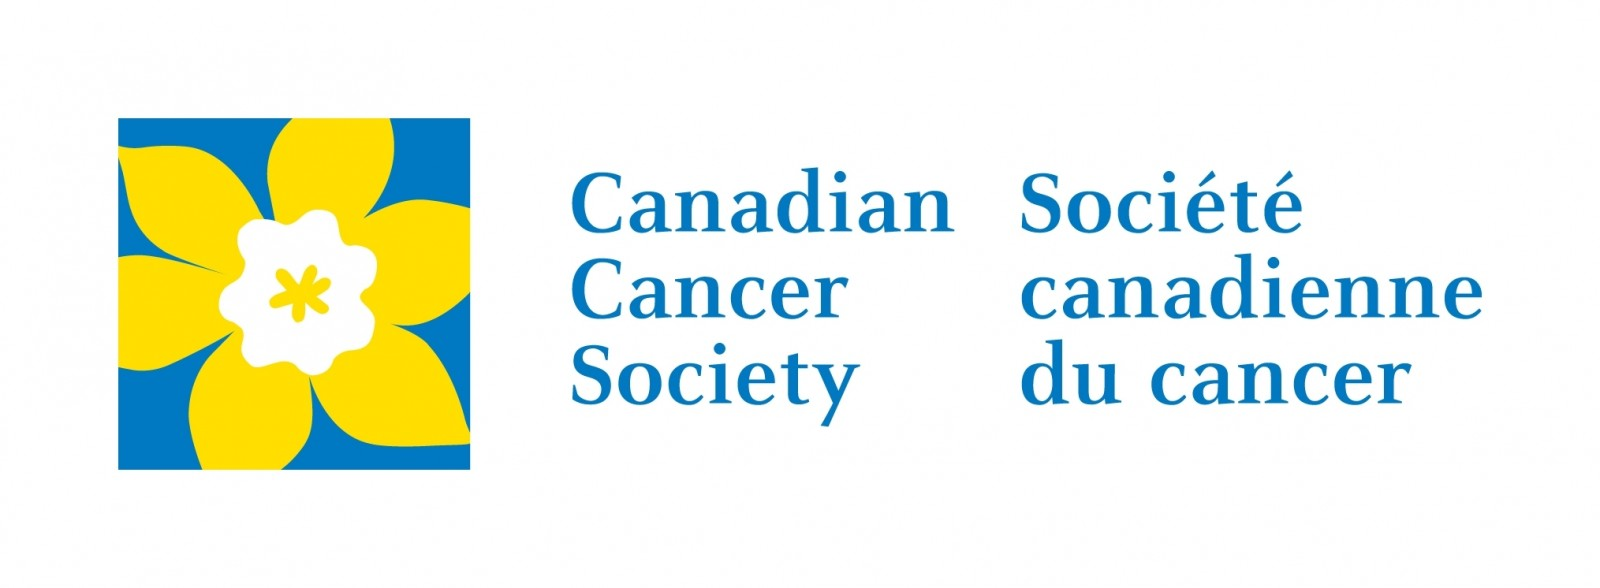 Canadian Cancer Society launches annual fundraising campaign